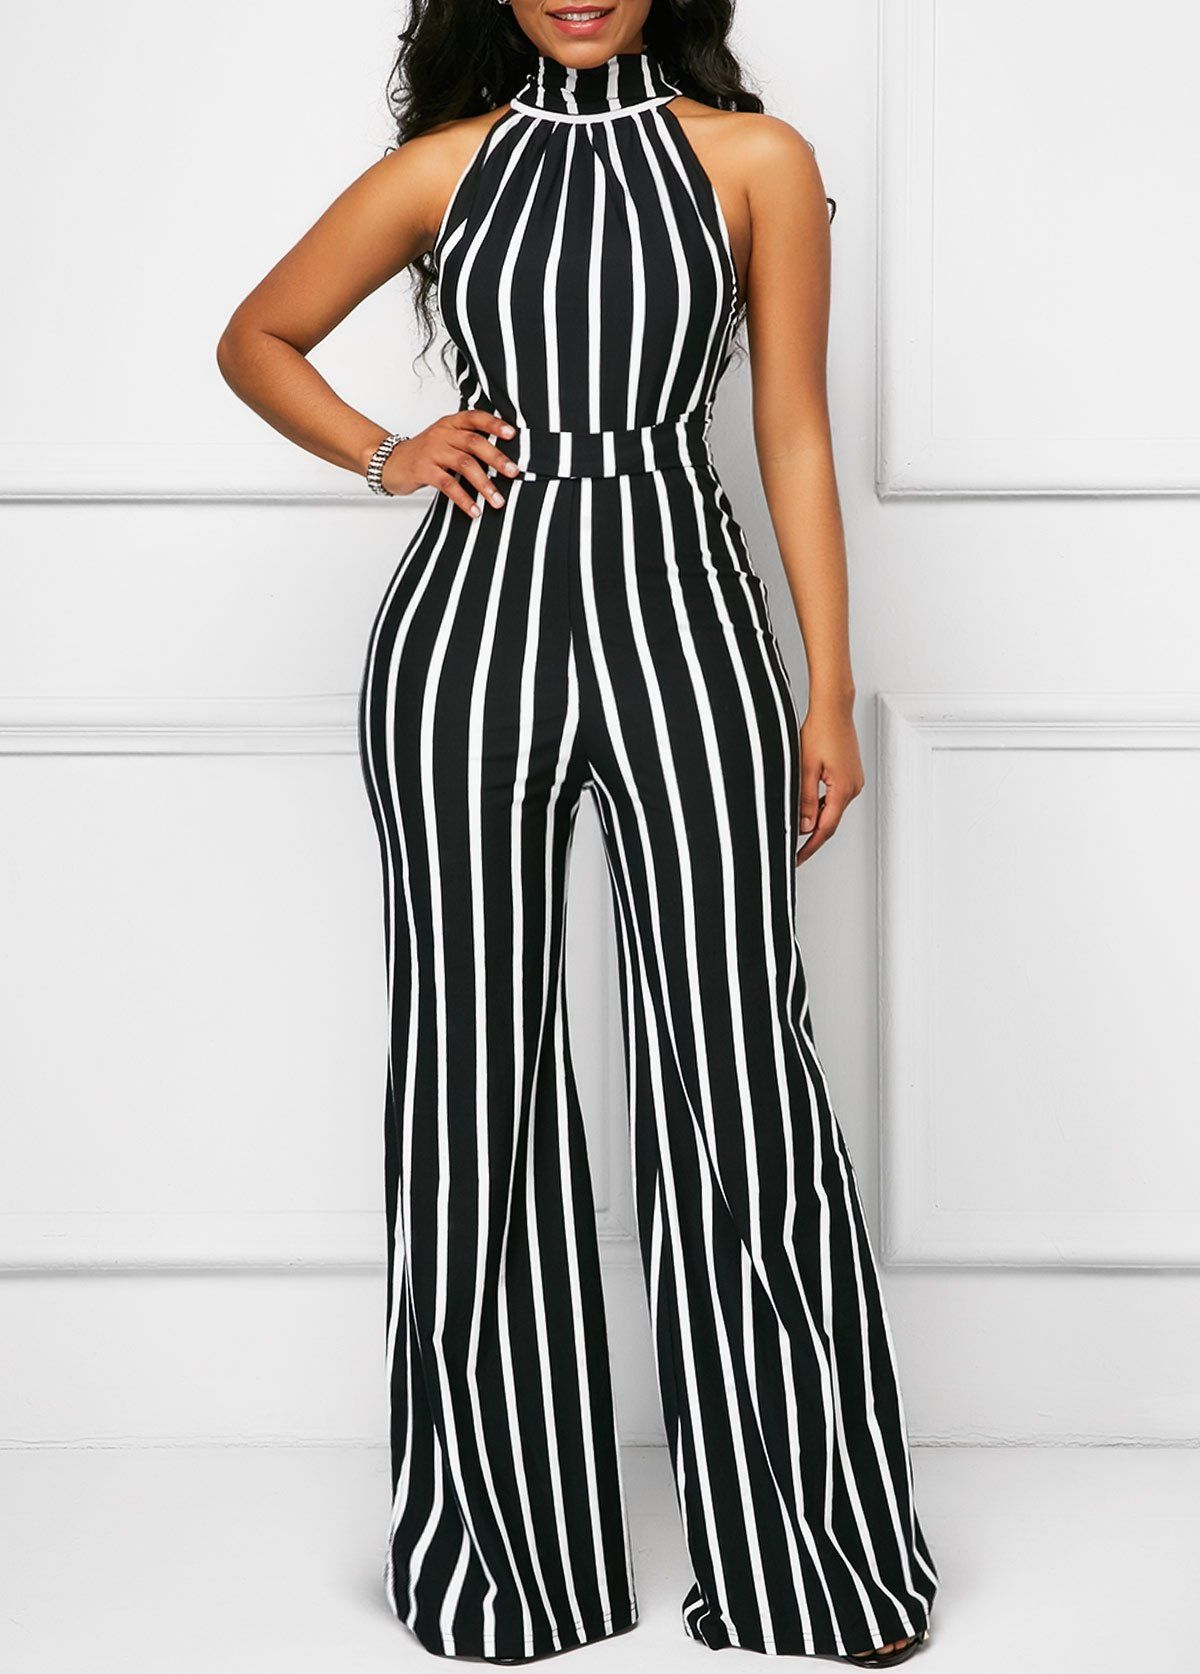 5bc53378ca3 Cutout Belted Striped Black Sleeveless Jumpsuit in 2019